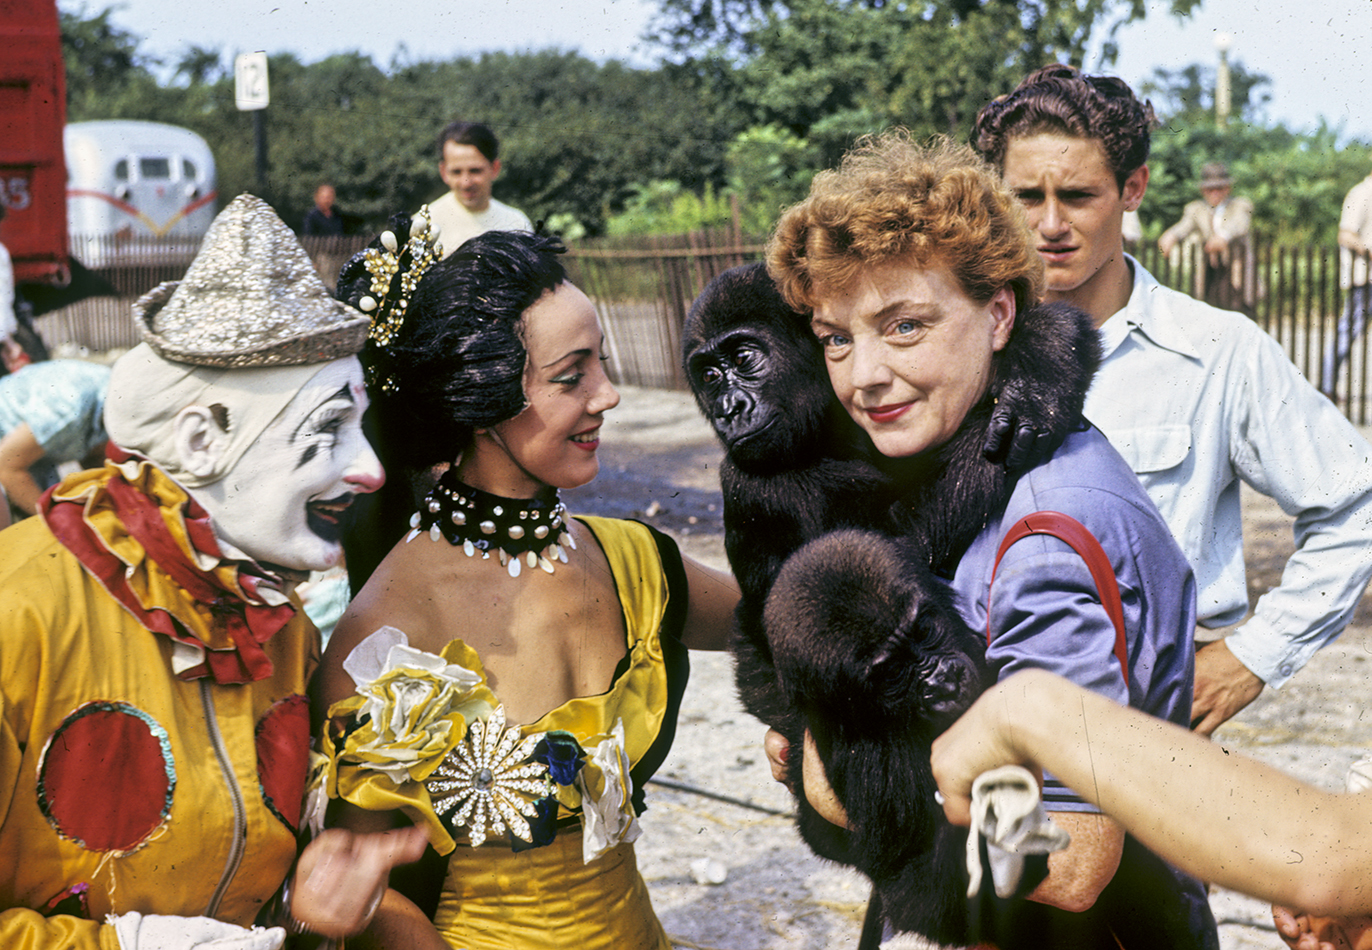 Four people in image, from left to right: a clown with white and black face paint in a yellow and red outfit, one aerialist in a yellow and black outfit, a woman in blue holding two baby gorillas, and a man in background looking at the gorillas.